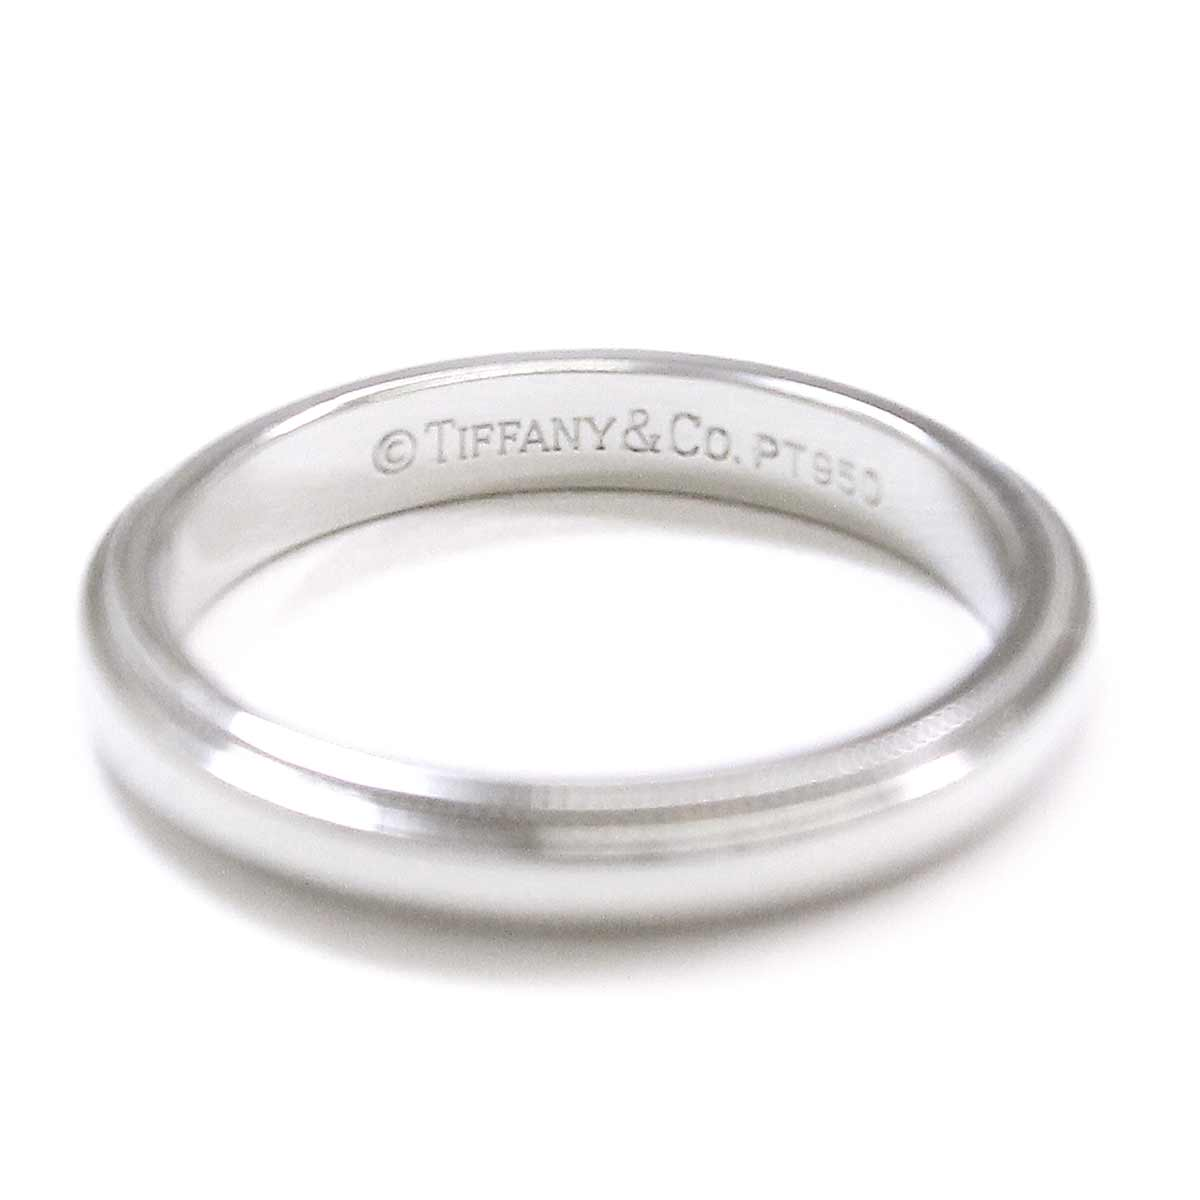 Tiffany mil grain band 11 ring PT950 3mm in width platinum ring TIFFANY&Co